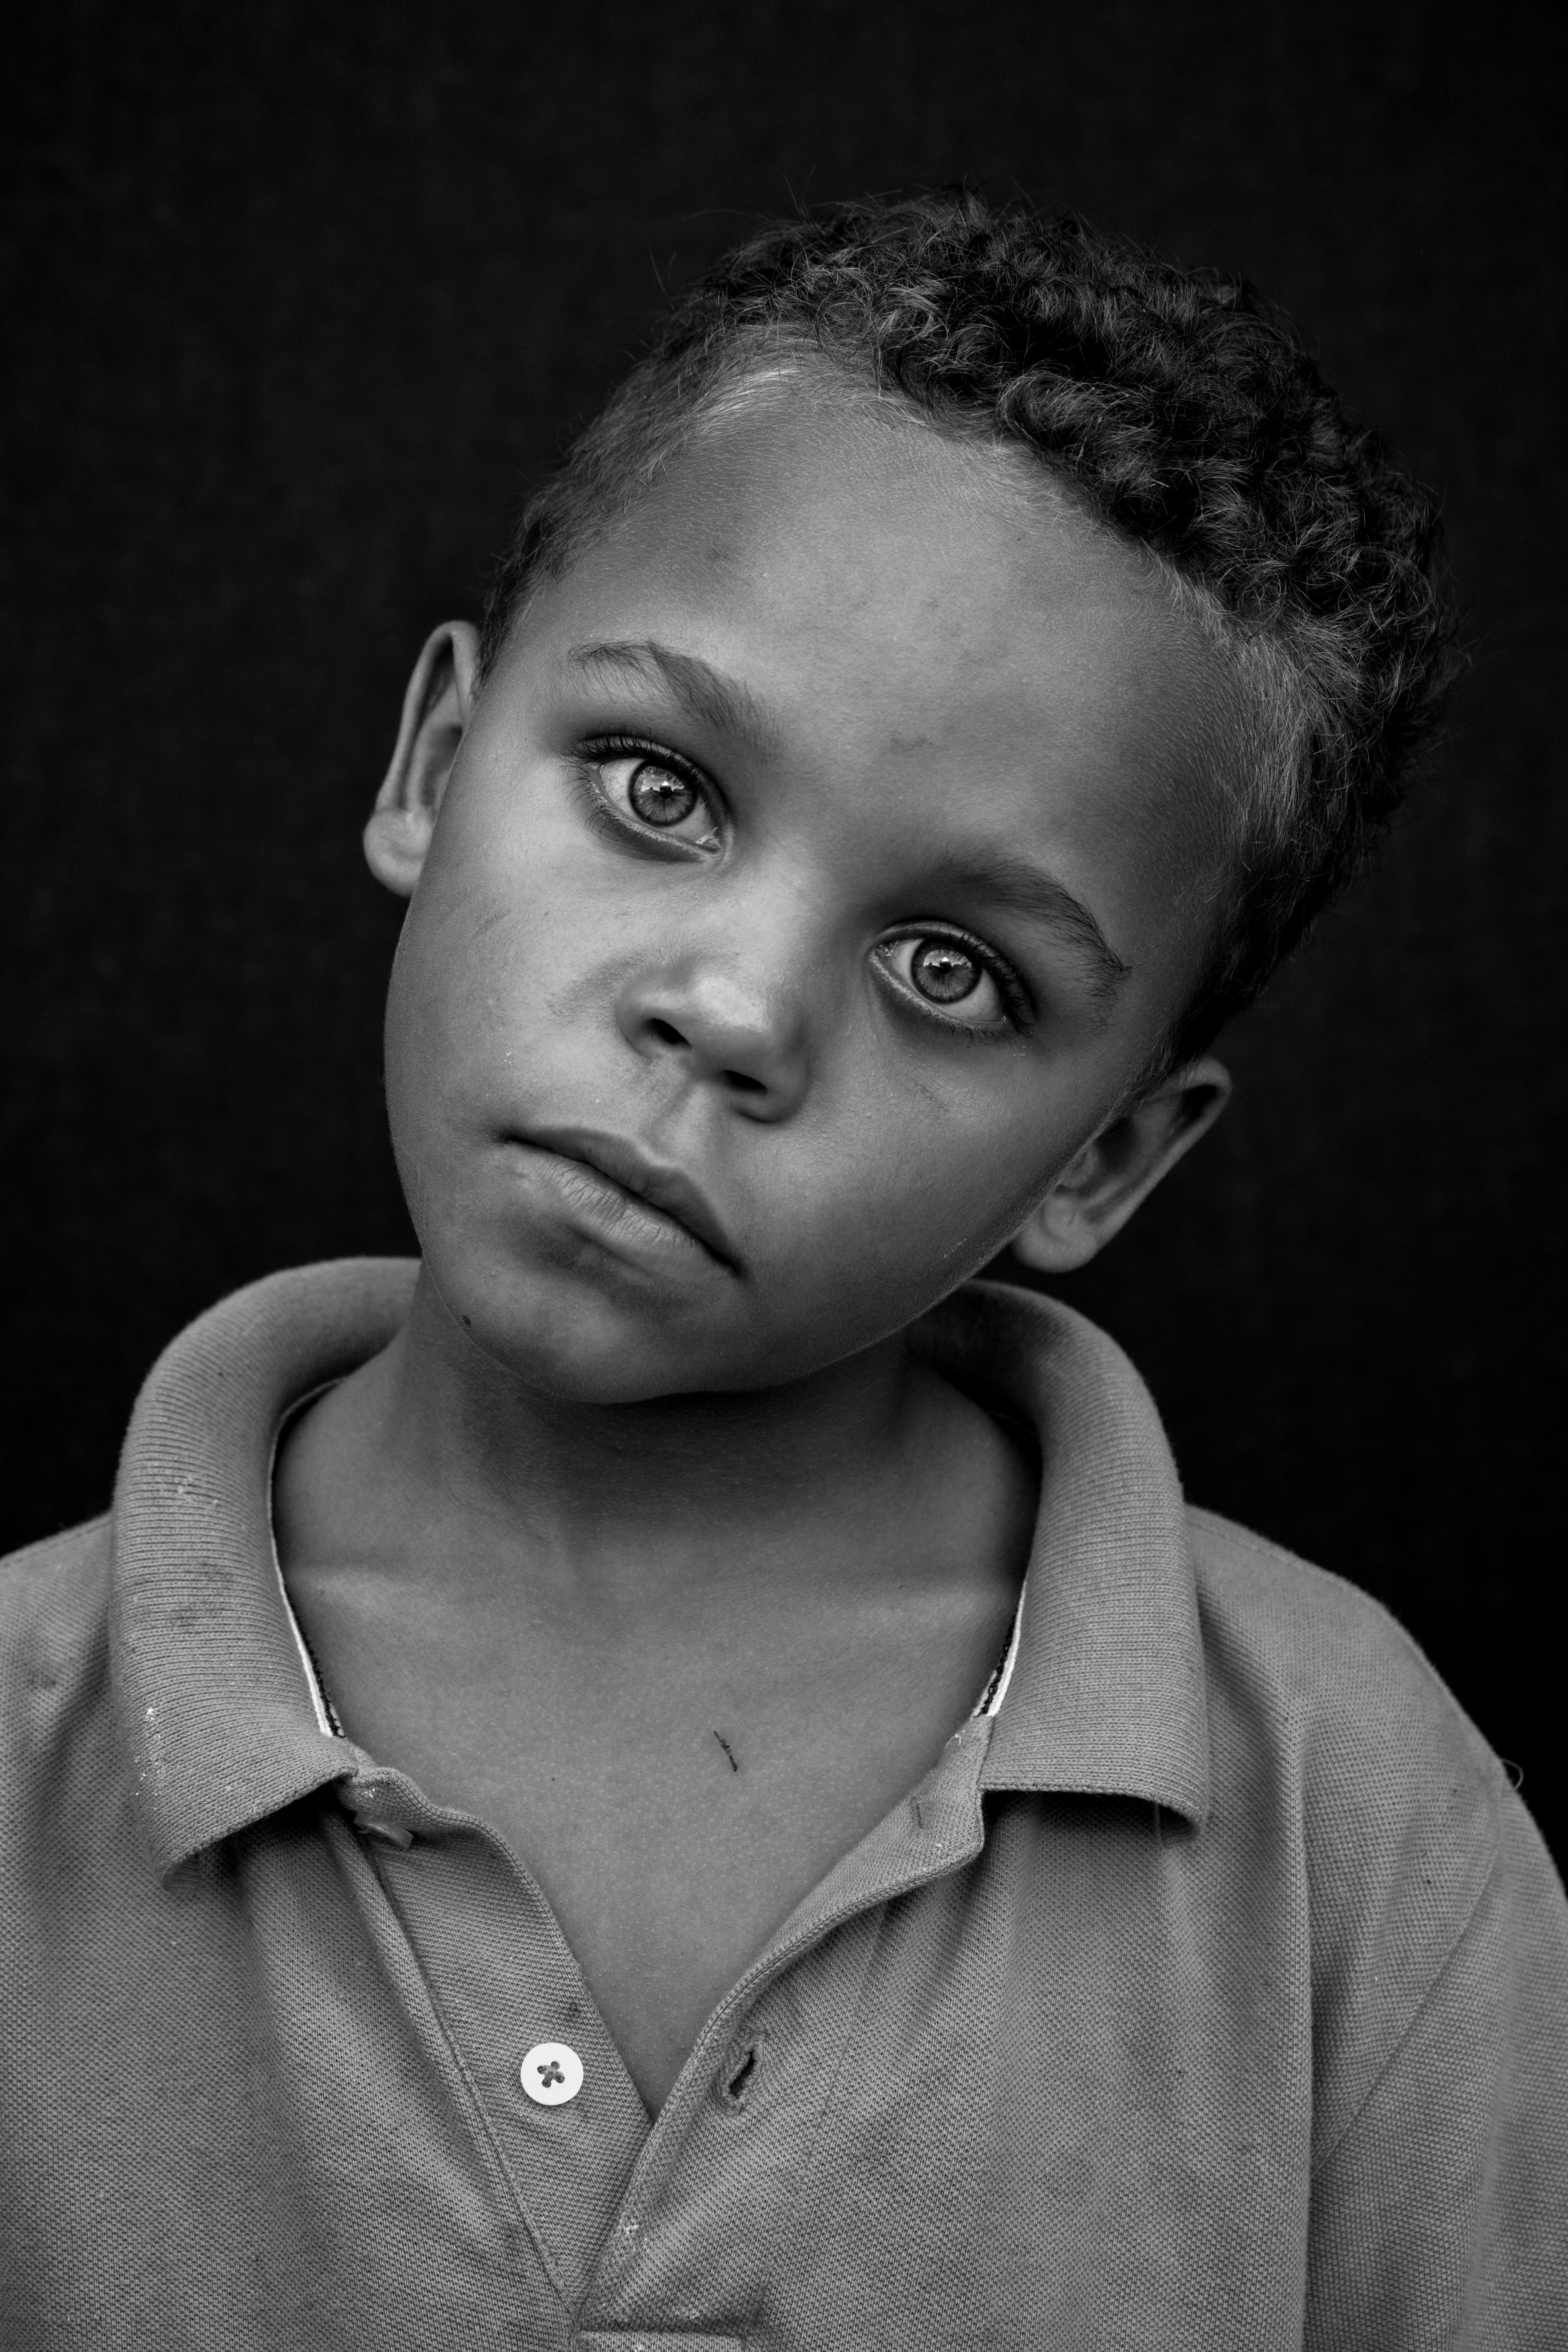 Monochrome photography photography gallery black and white photography portrait photography photography tricks